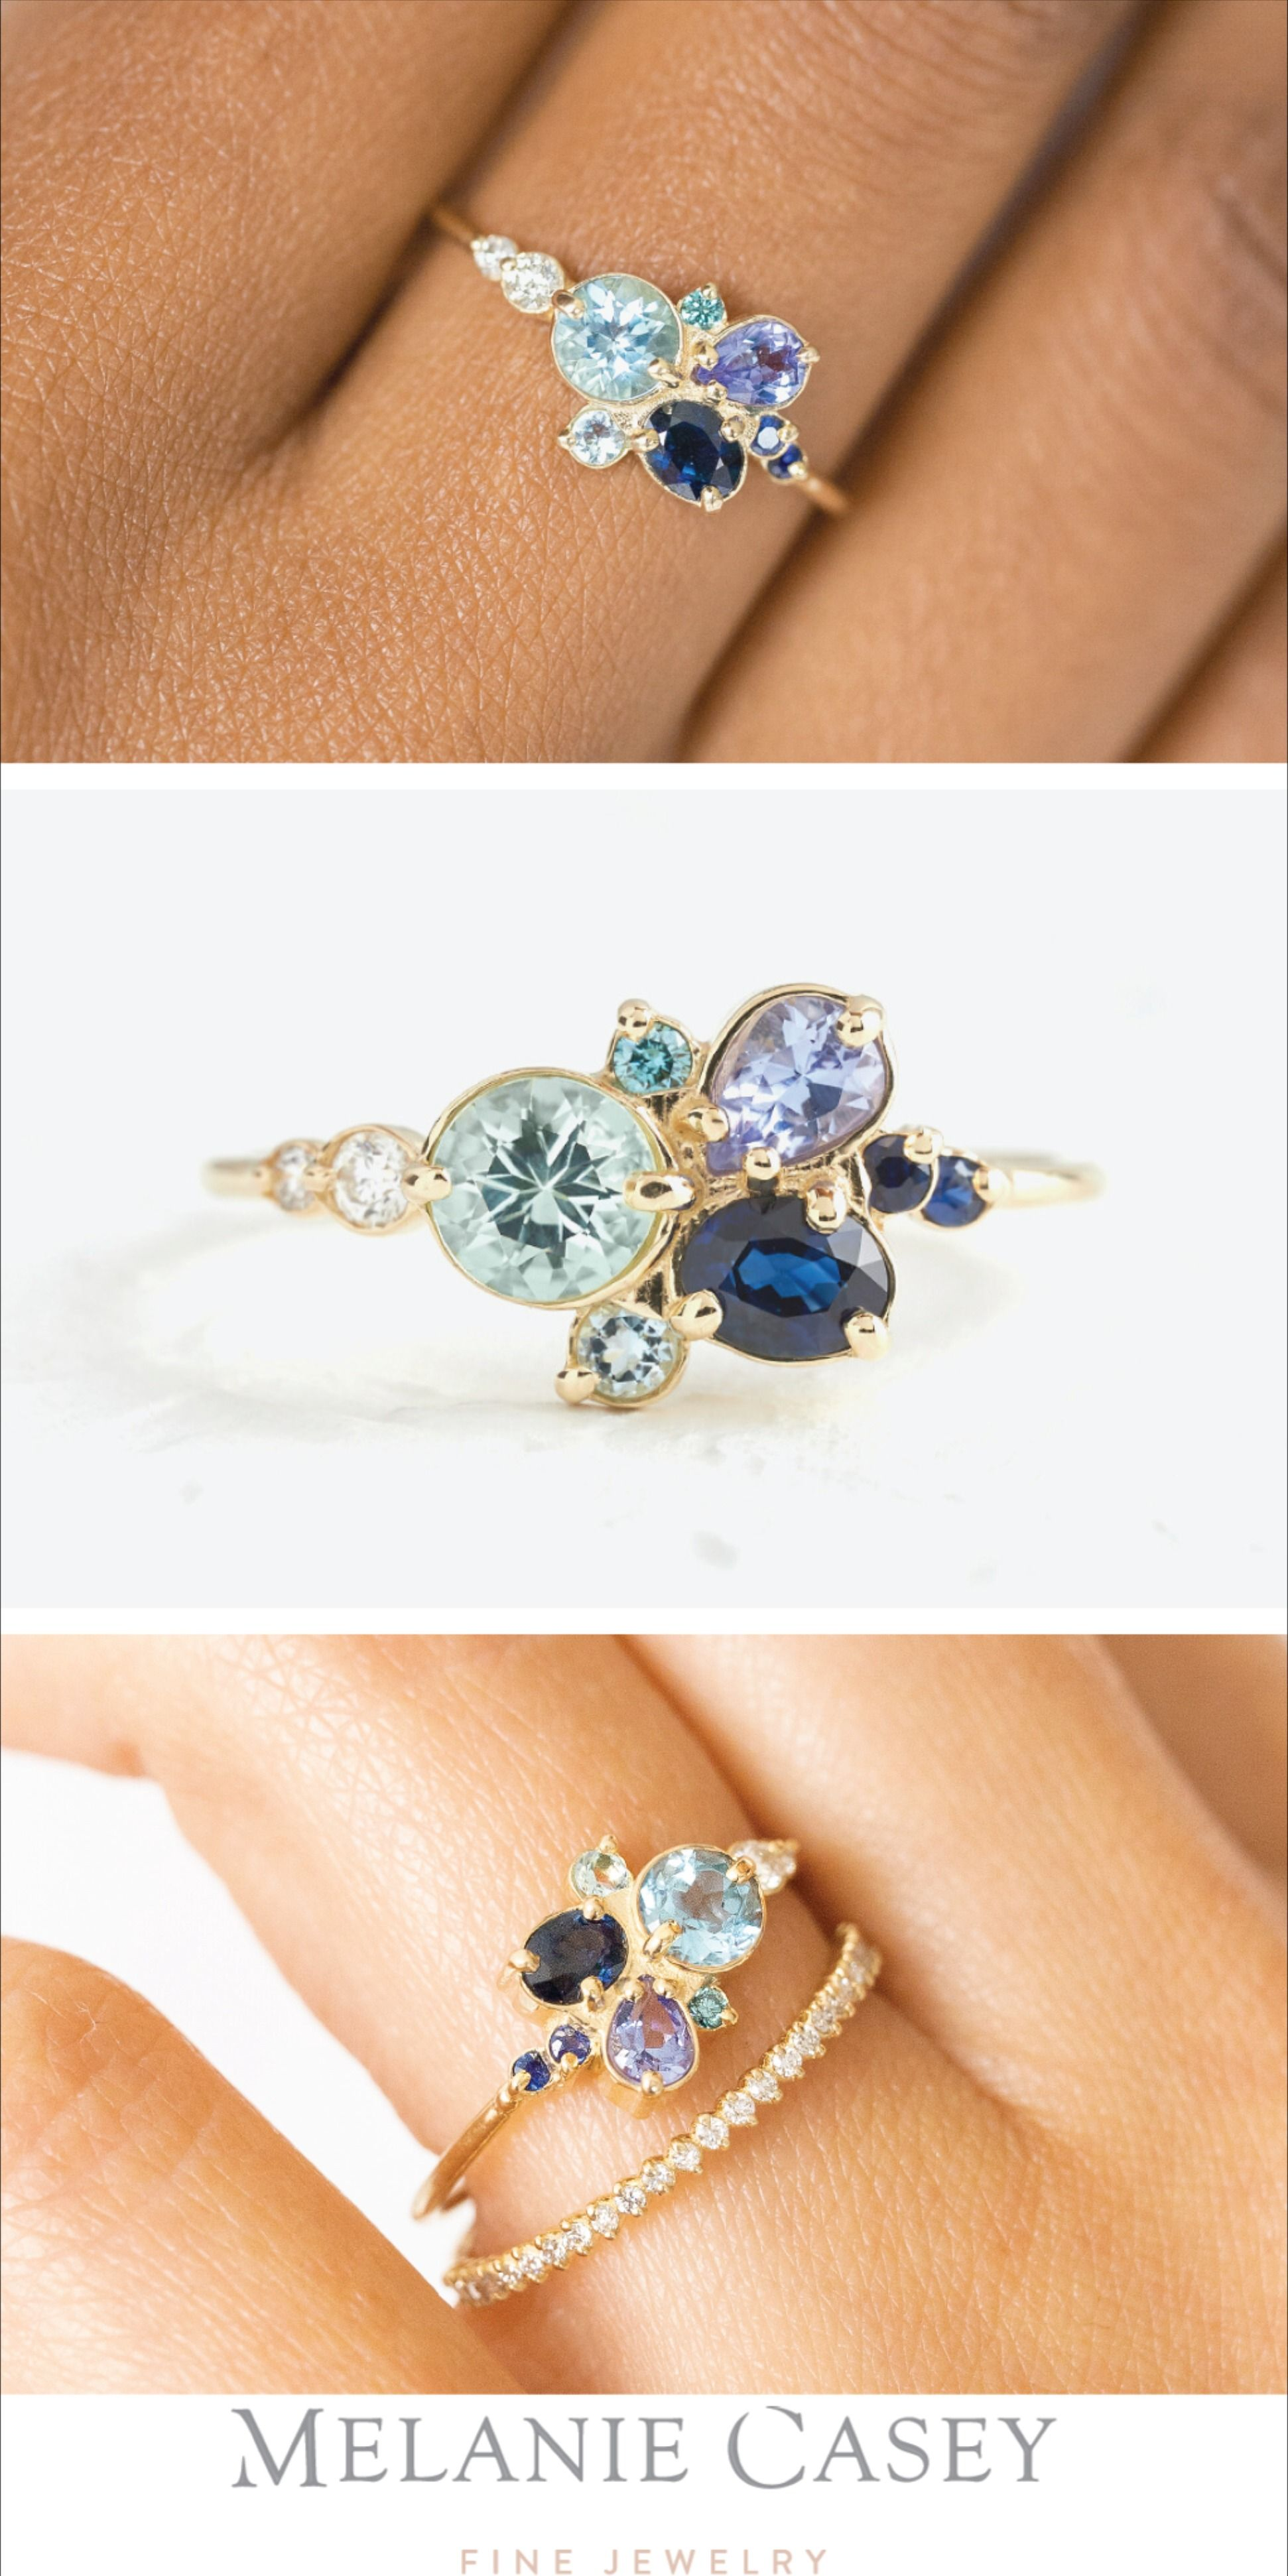 0.5CT Natural Round Cut Sapphire Center,14K Solid Gold Female Ring,Minimalist Style Blue Gem Engagement Ring,Anniversary Ring,Promise Ring